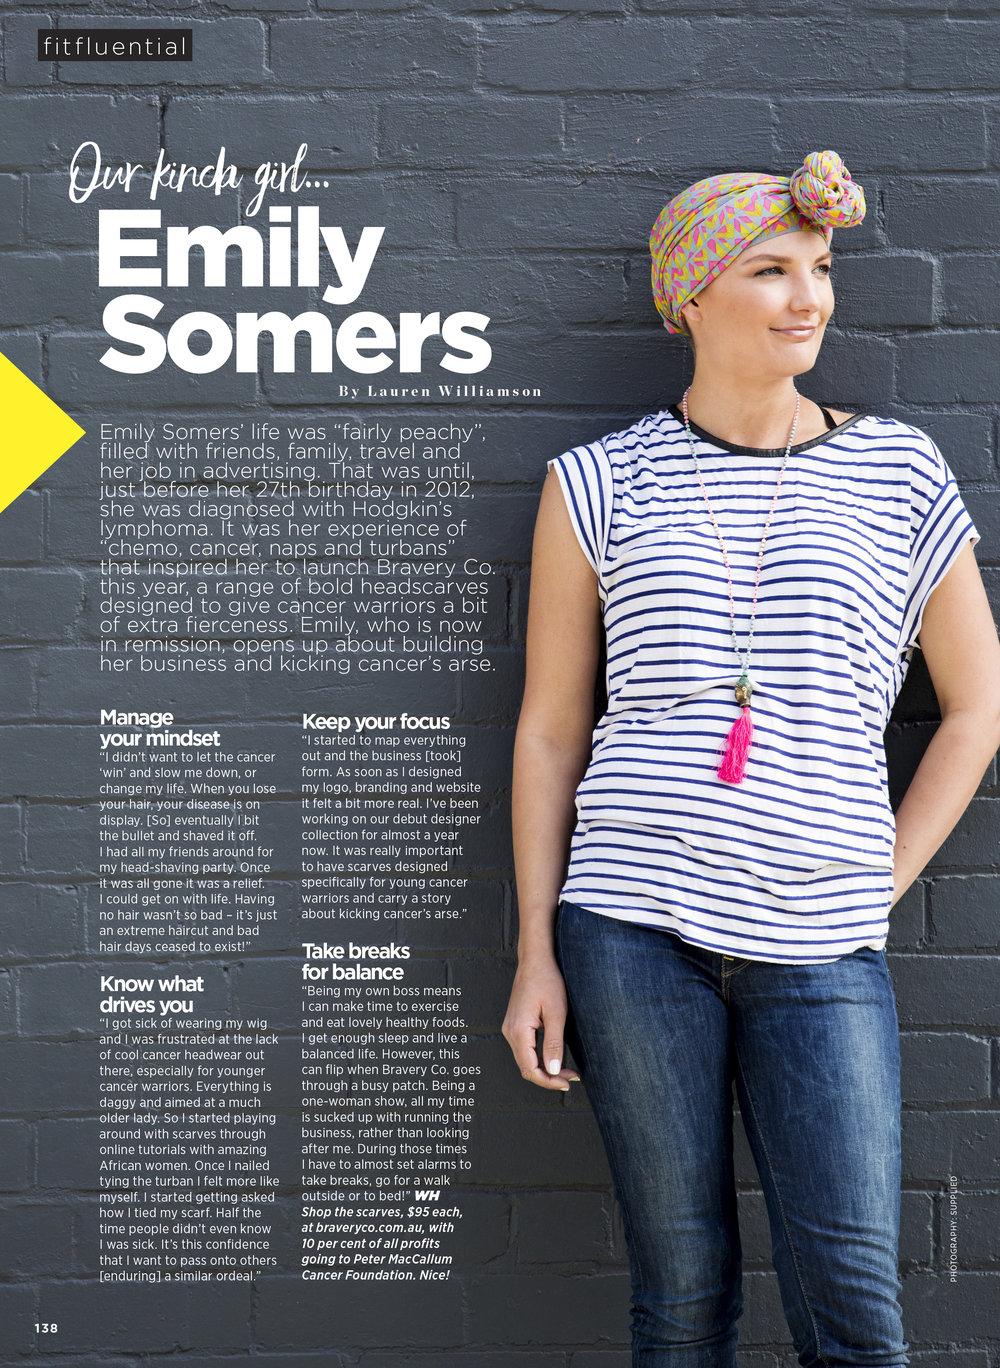 REG_OUR_KINDA_GIRL_EMILY_SOMERS.jpg